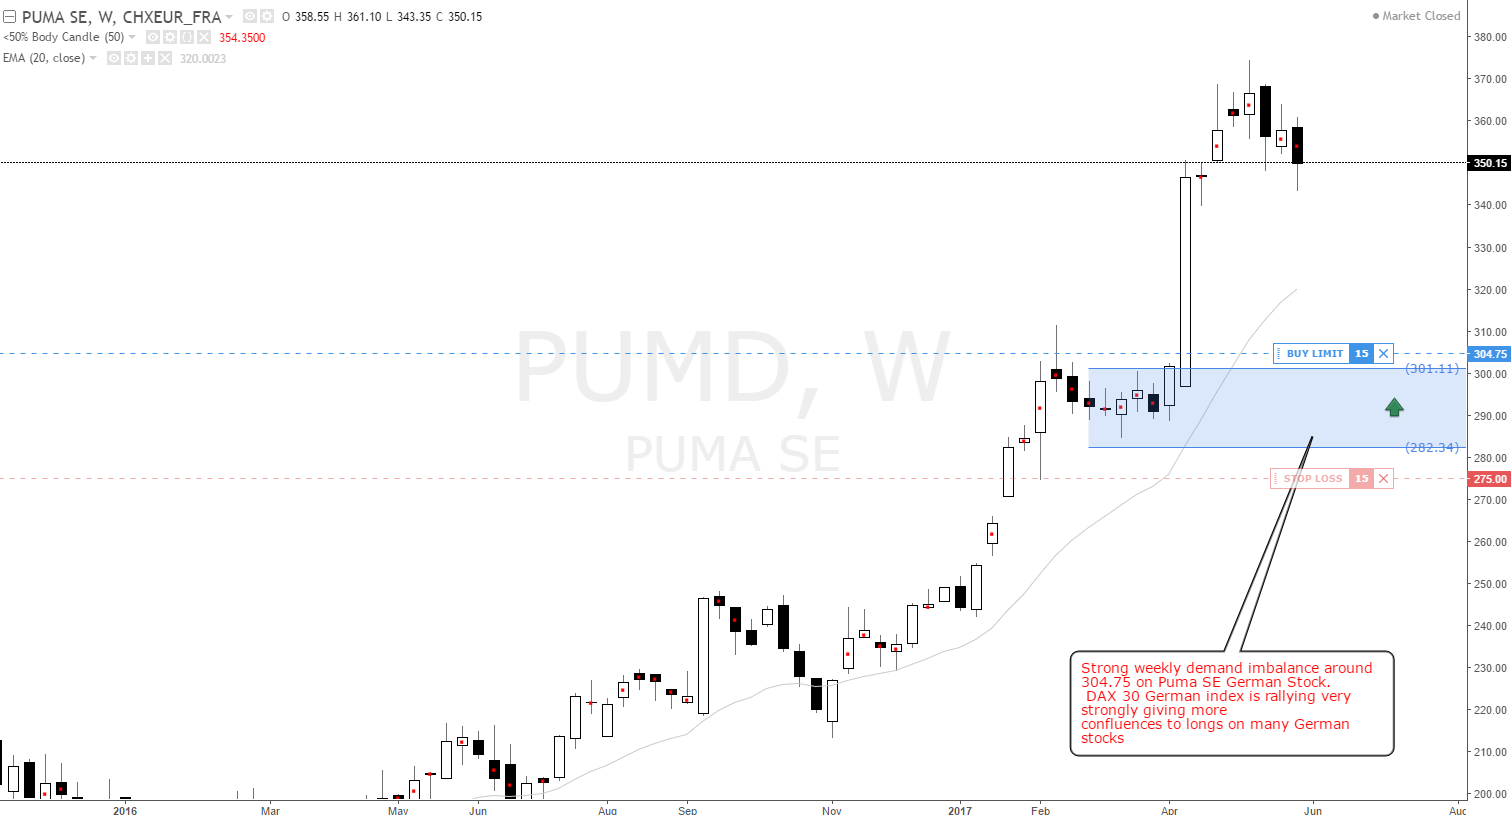 puma_weekly_demand